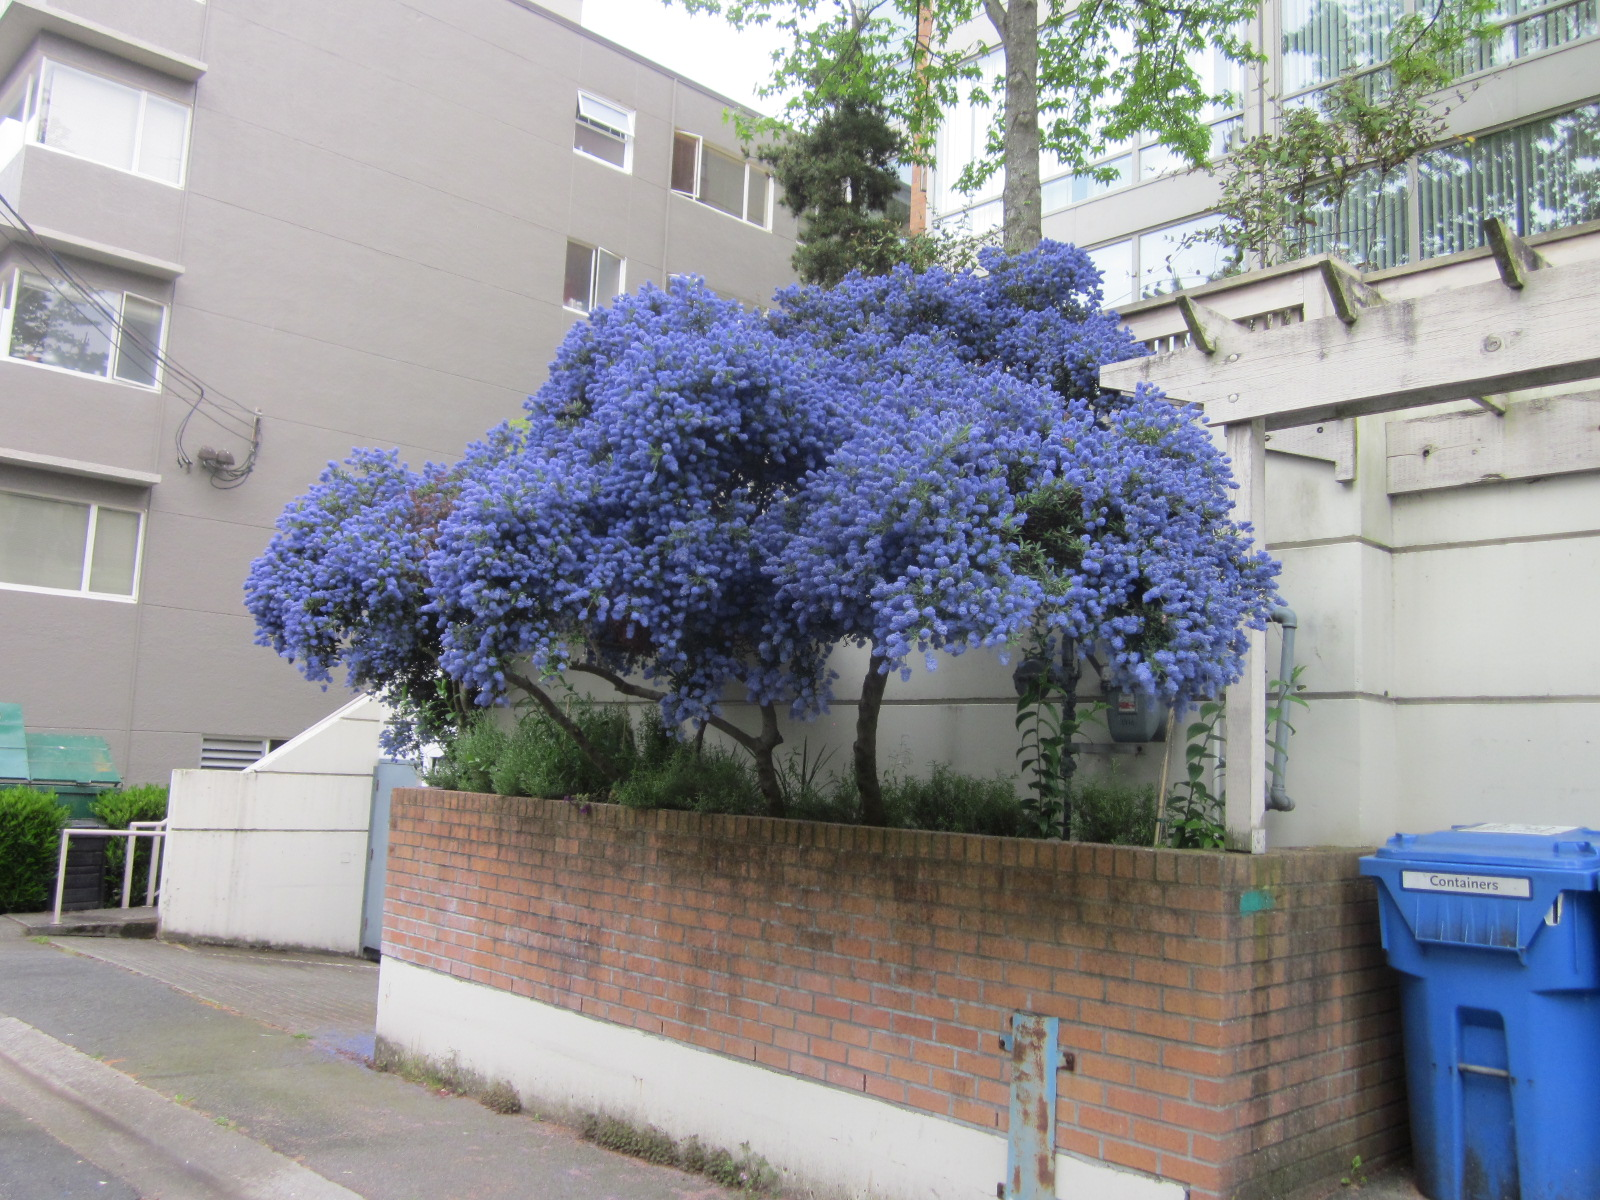 Ceanothus Is An Evergreen Shrub Or Small Tree With Many Cers Of Blue Flower Clumps In Spring And Summer Bees Swarm To The Bright Flowers Early